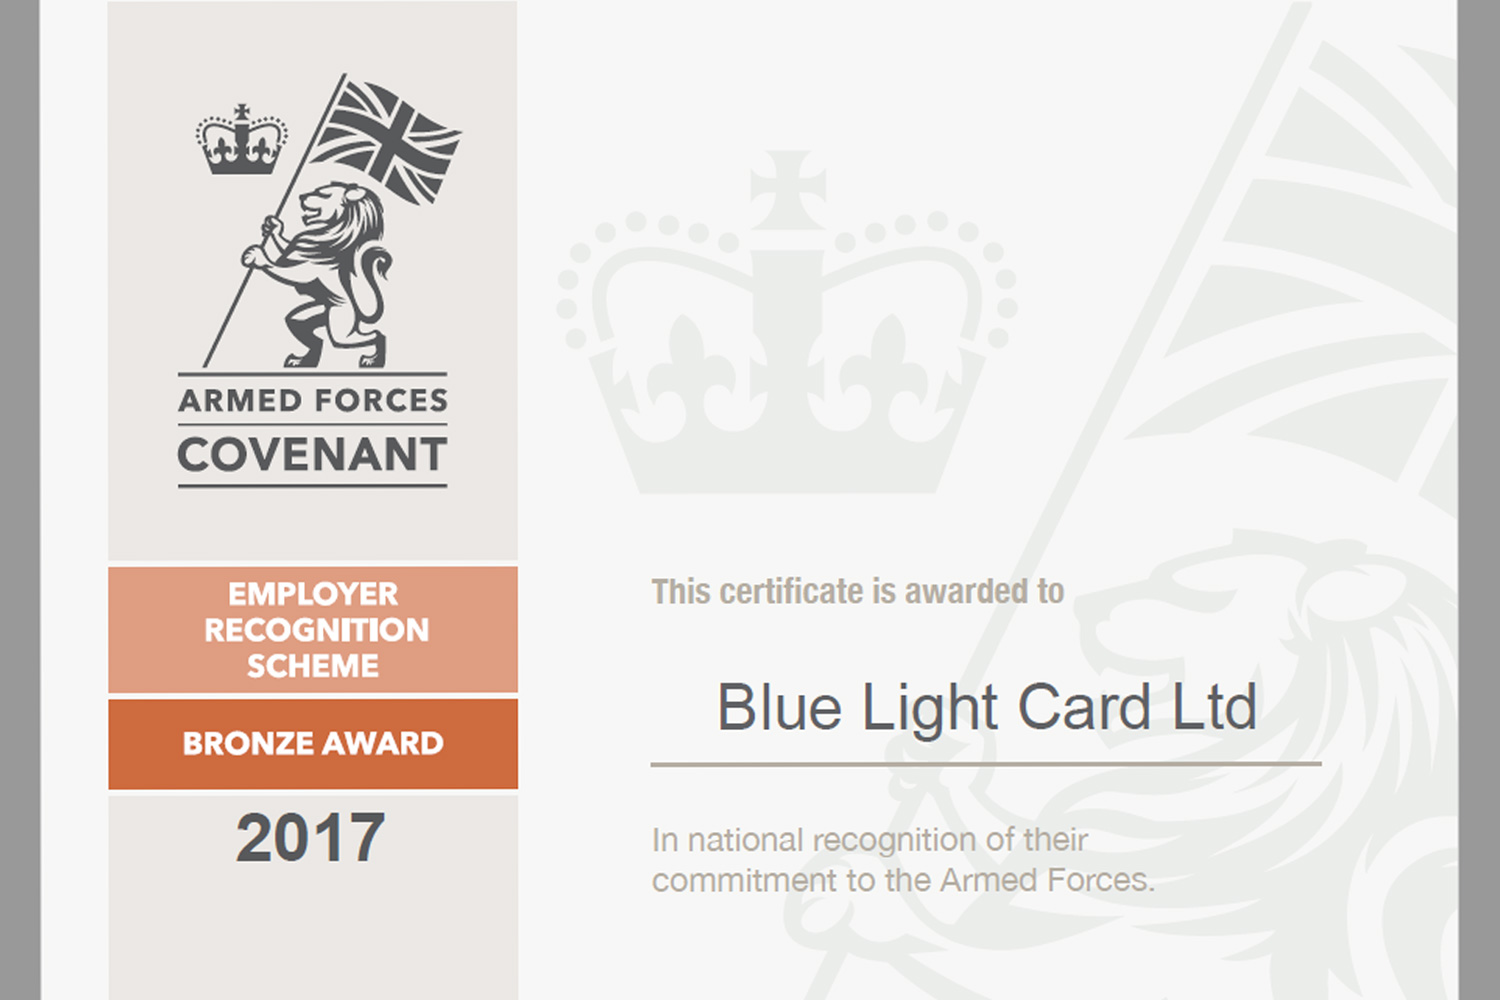 Armed Forces Covenant bronze award for DDS